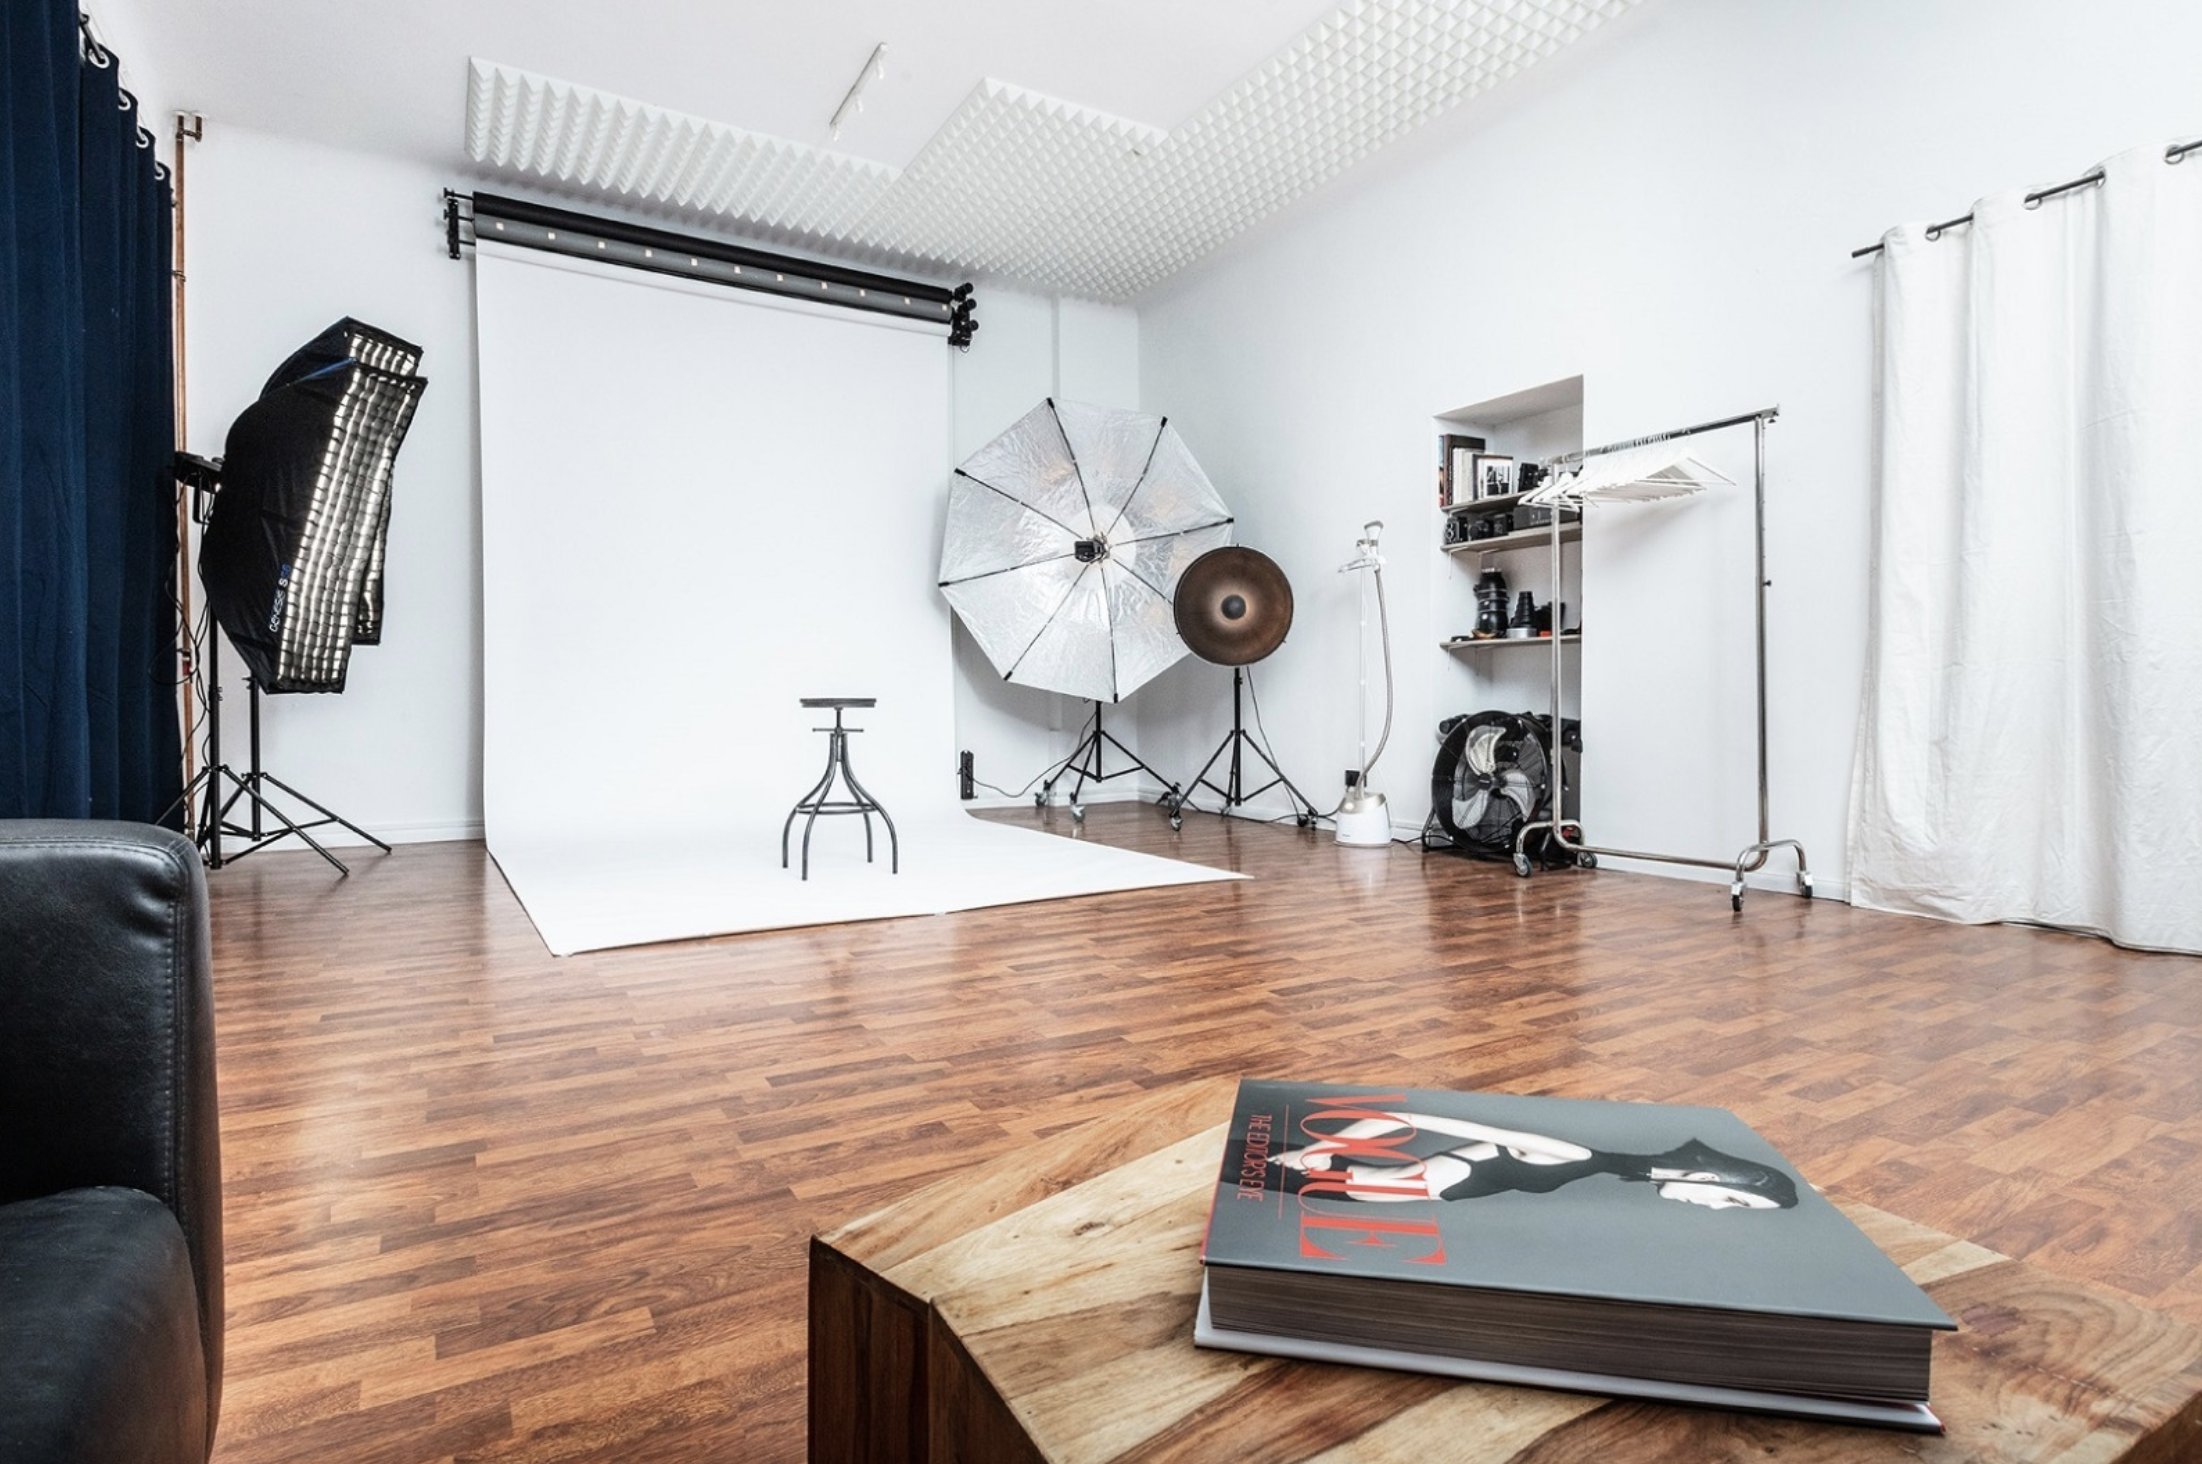 Rent professional photo studio in Berlin, Germany with Beazy